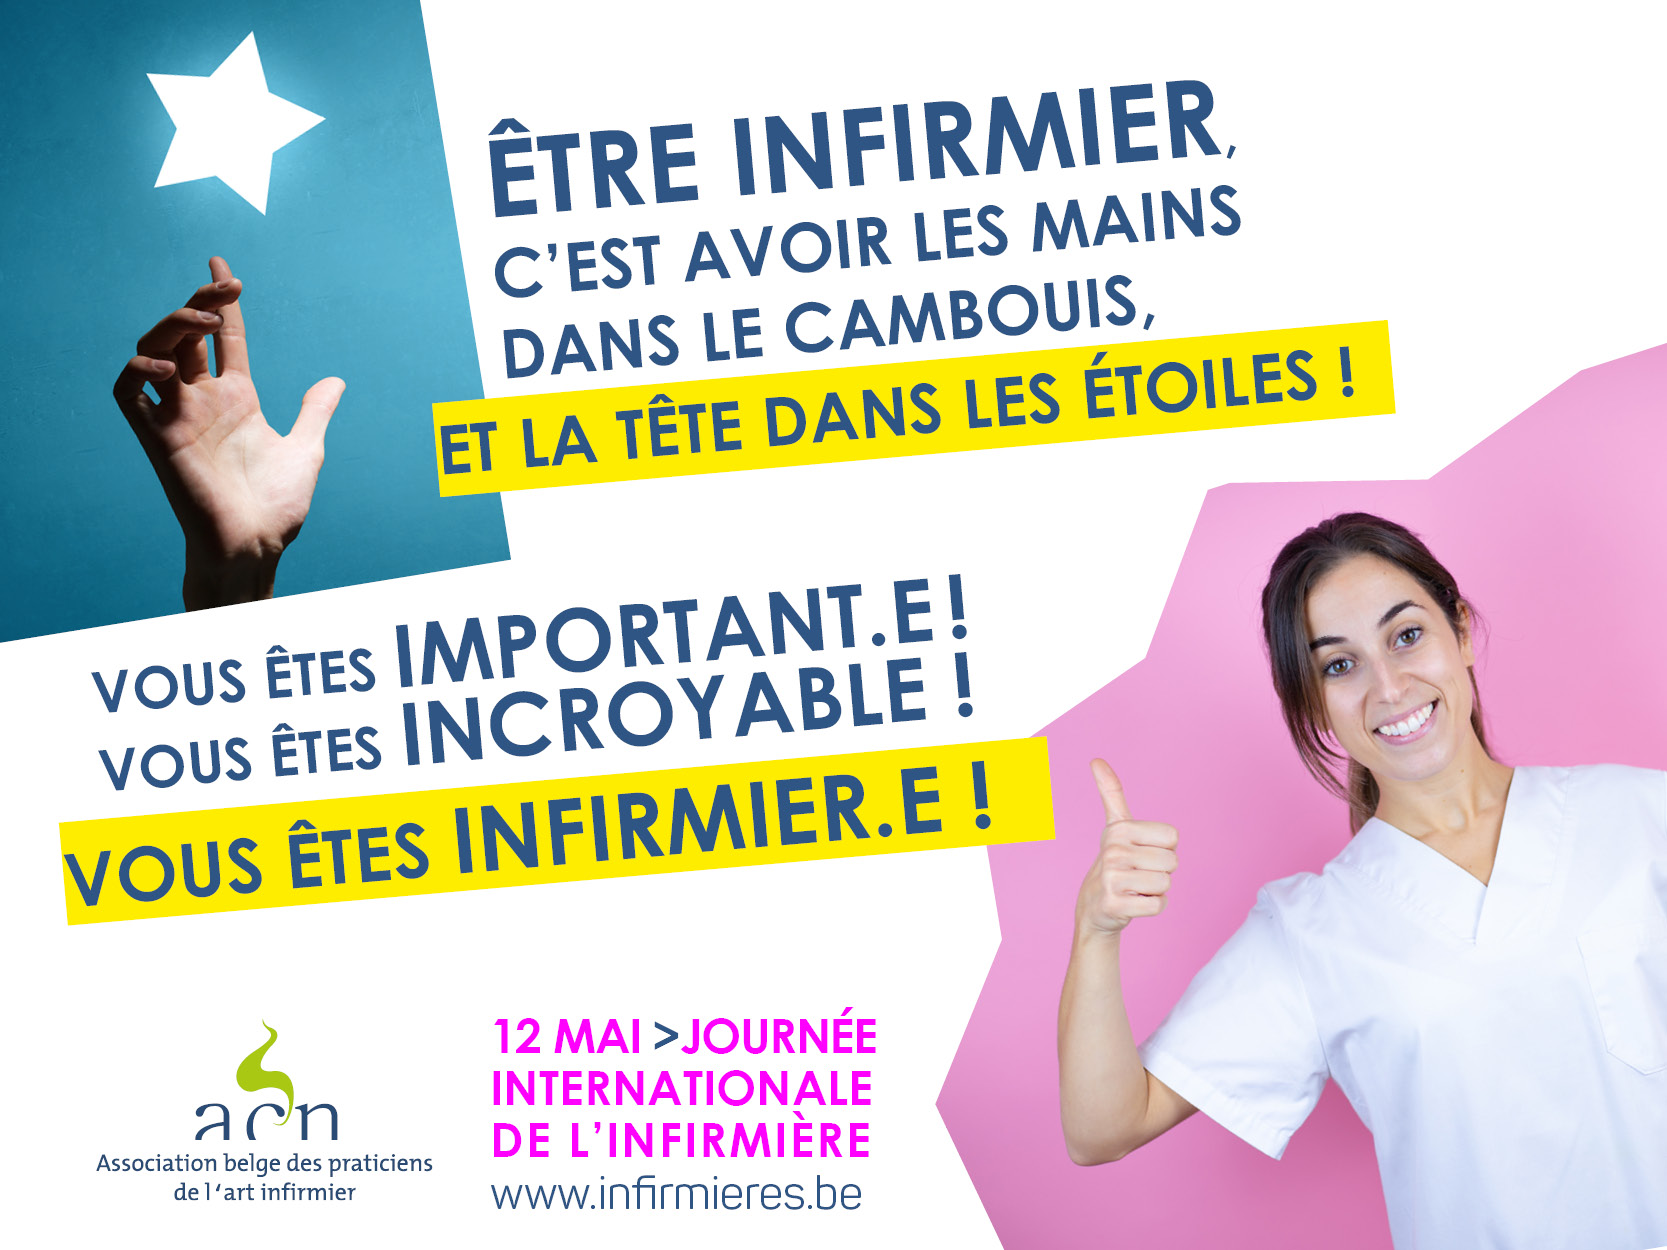 12 MAI 2020 JOURNEE INTERNATIONALE DE L'INFIRMIERE...